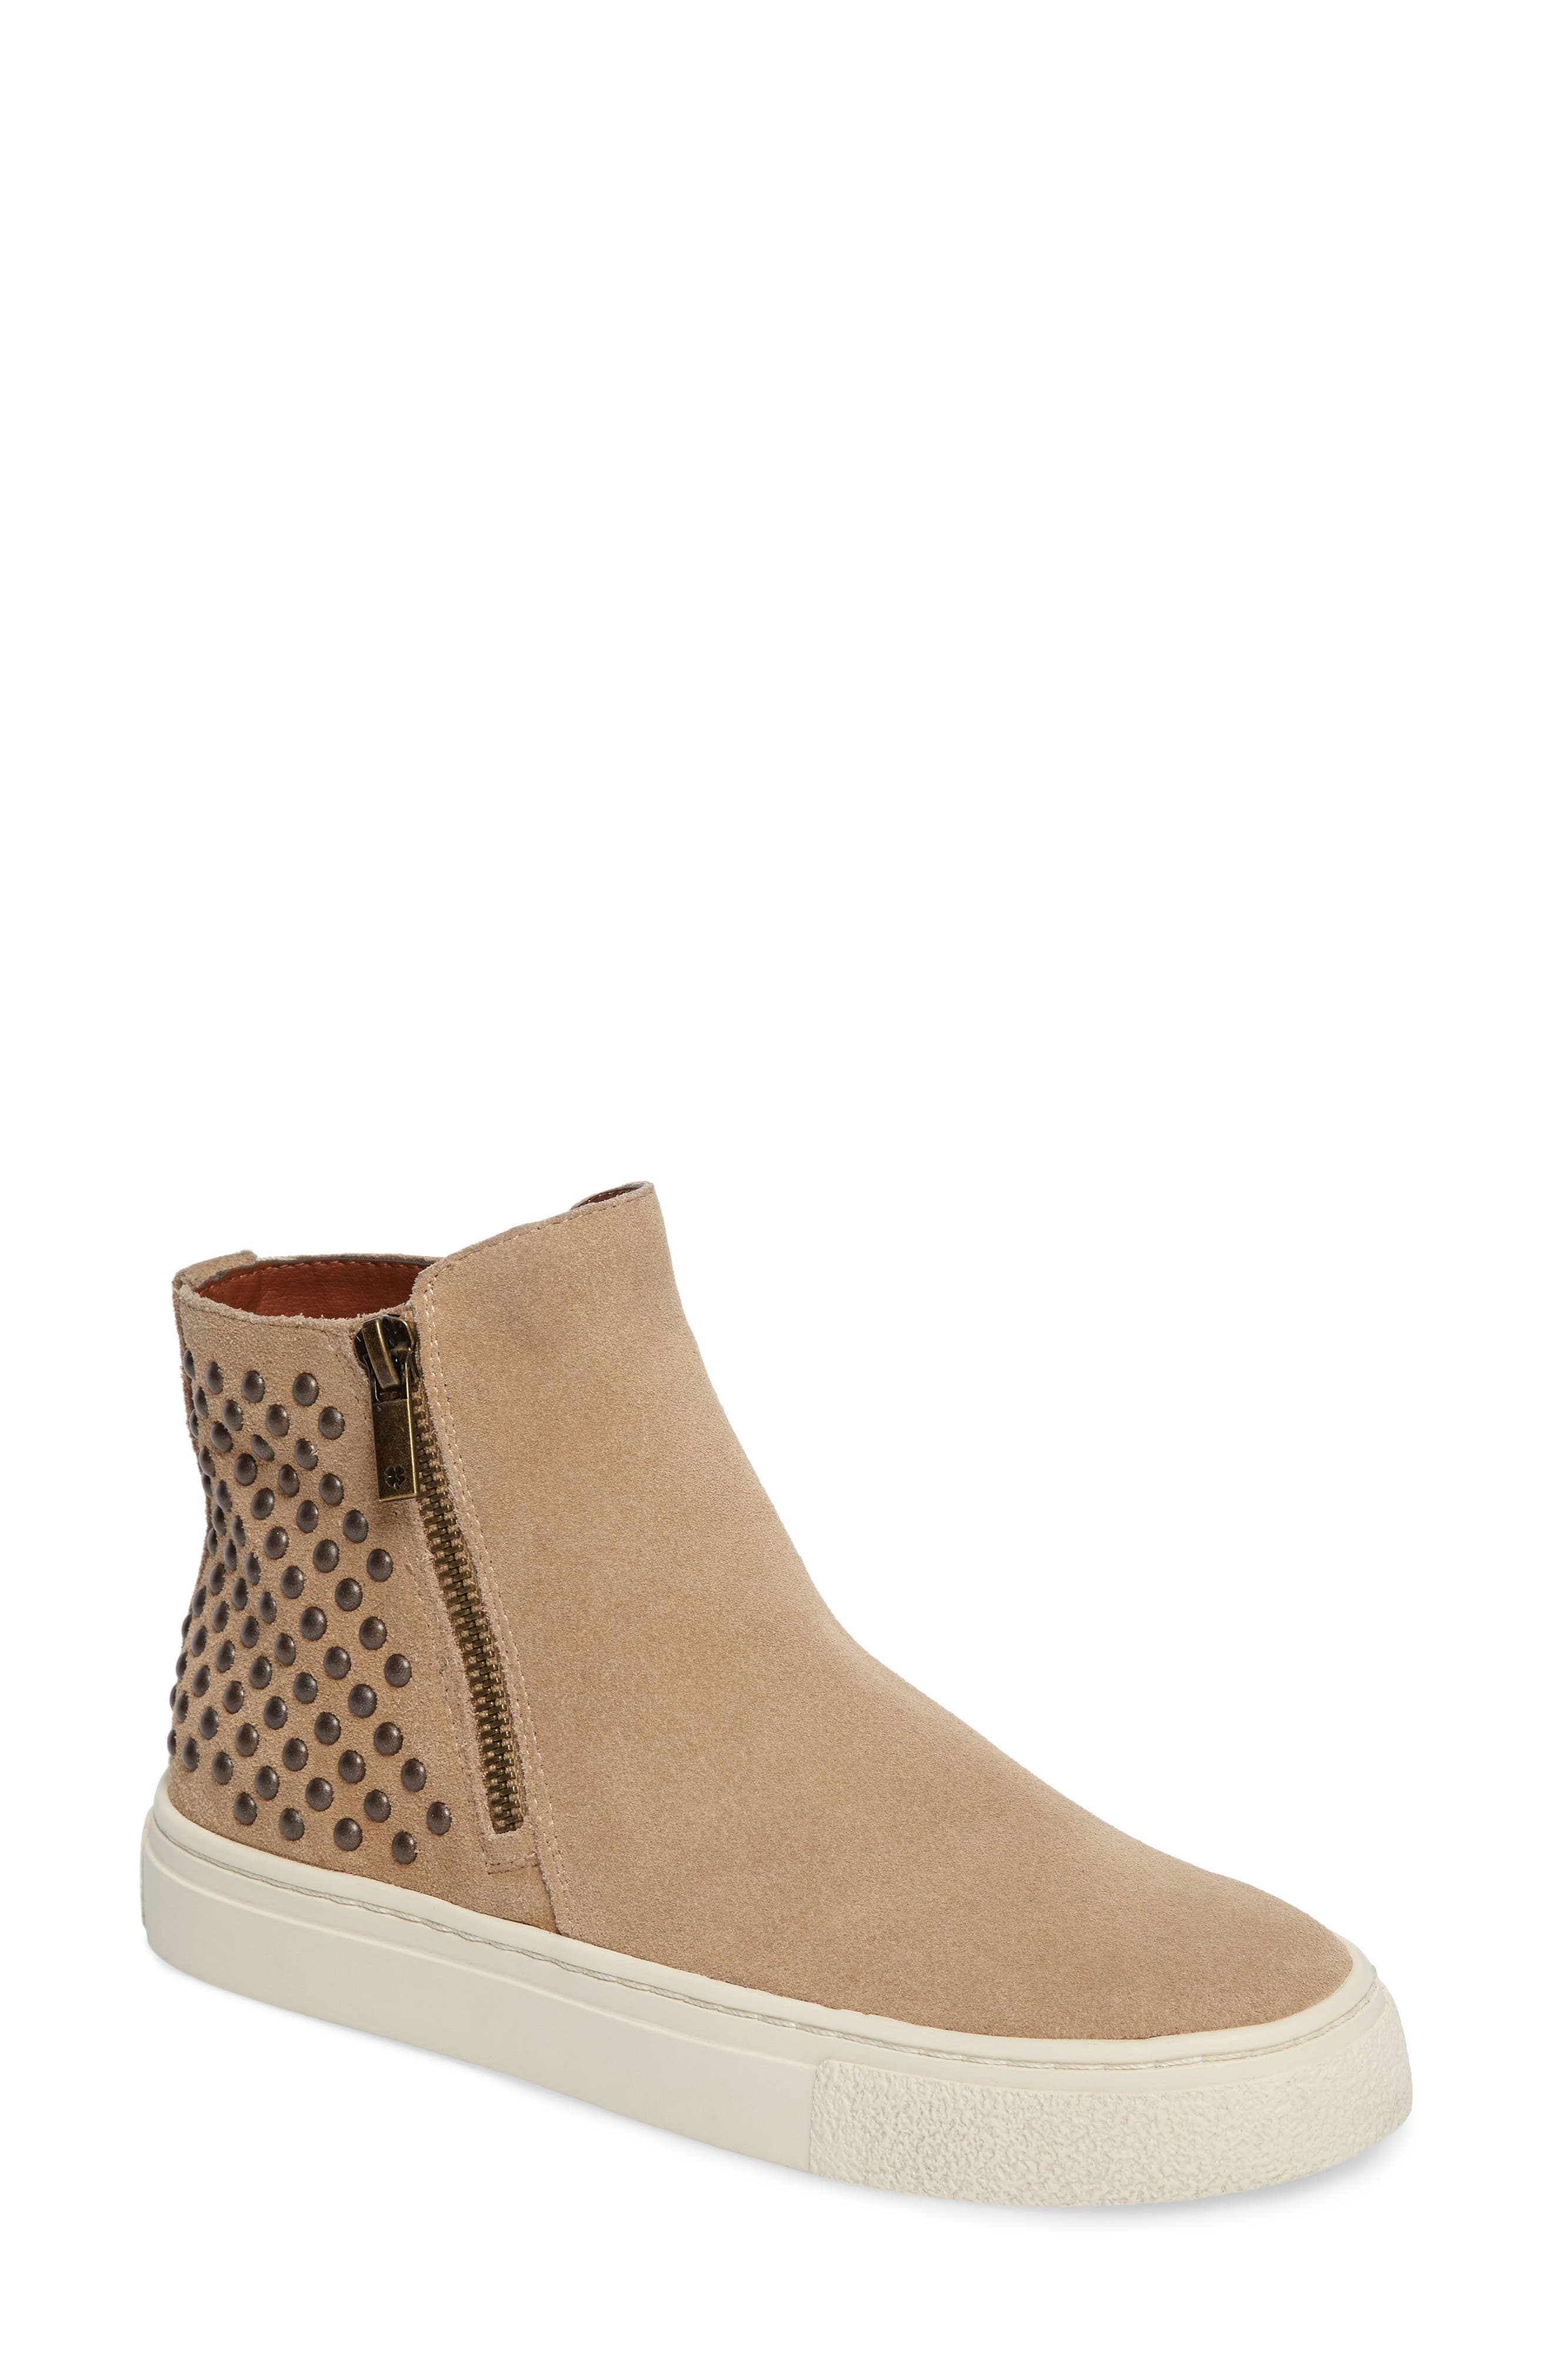 Alternate Image 1 Selected - Lucky Brand Bayleah High Top Sneaker (Women)